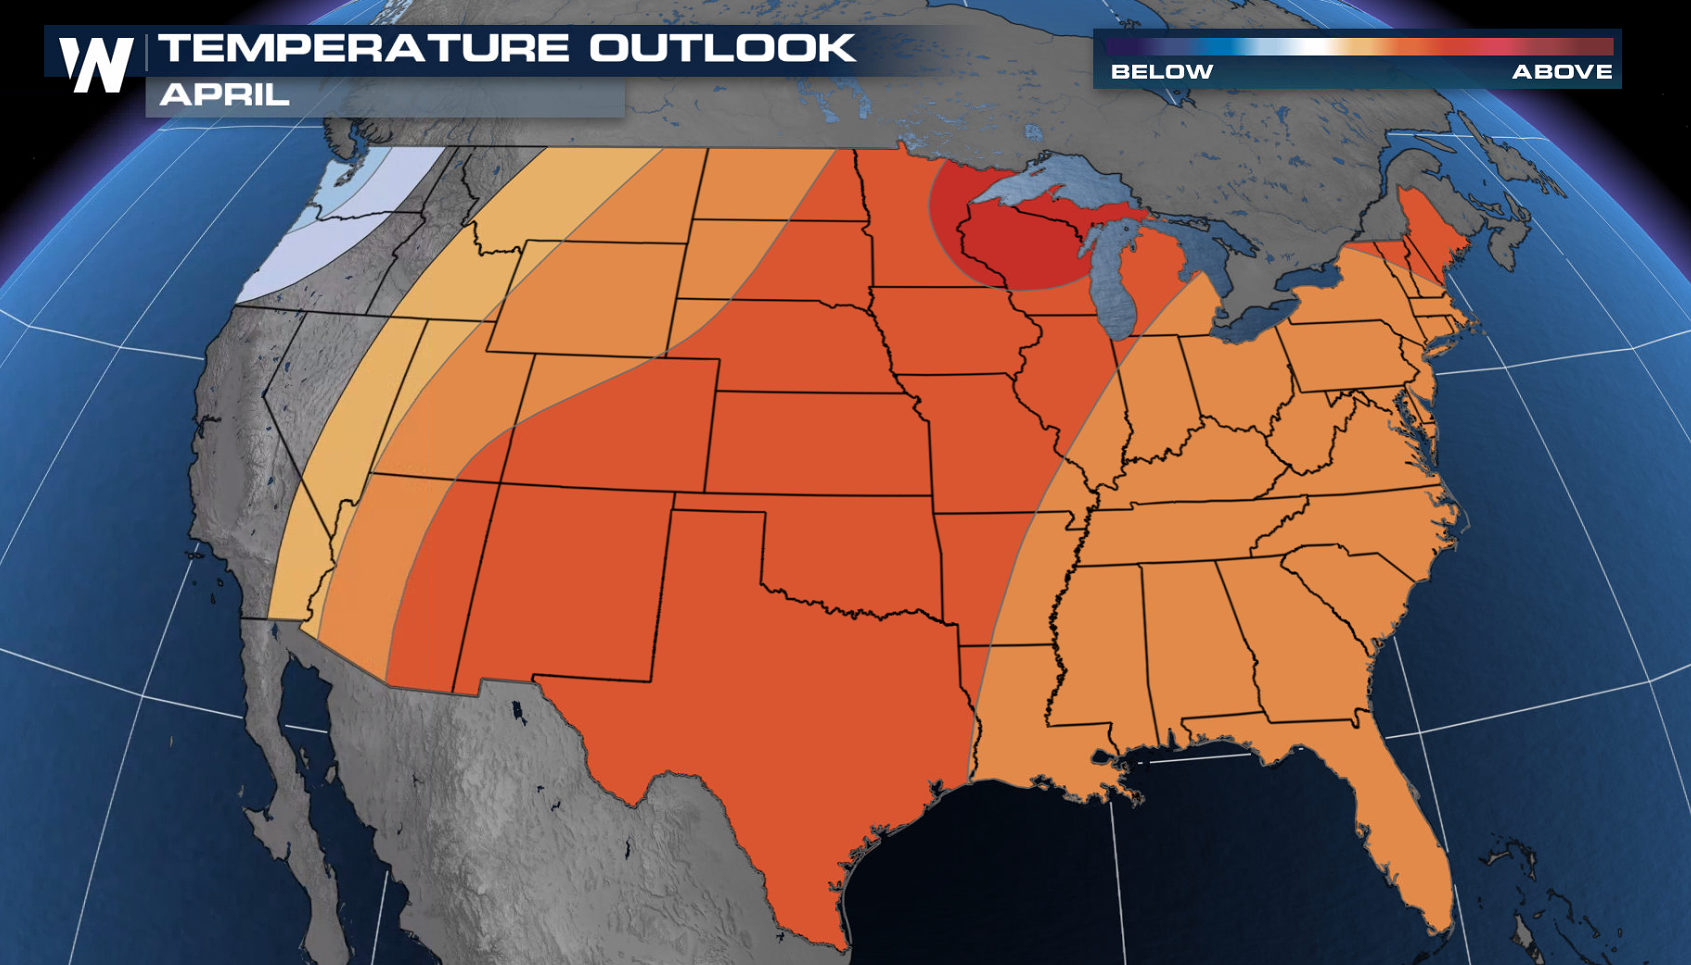 April Outlook Points to Warm and Dry Month